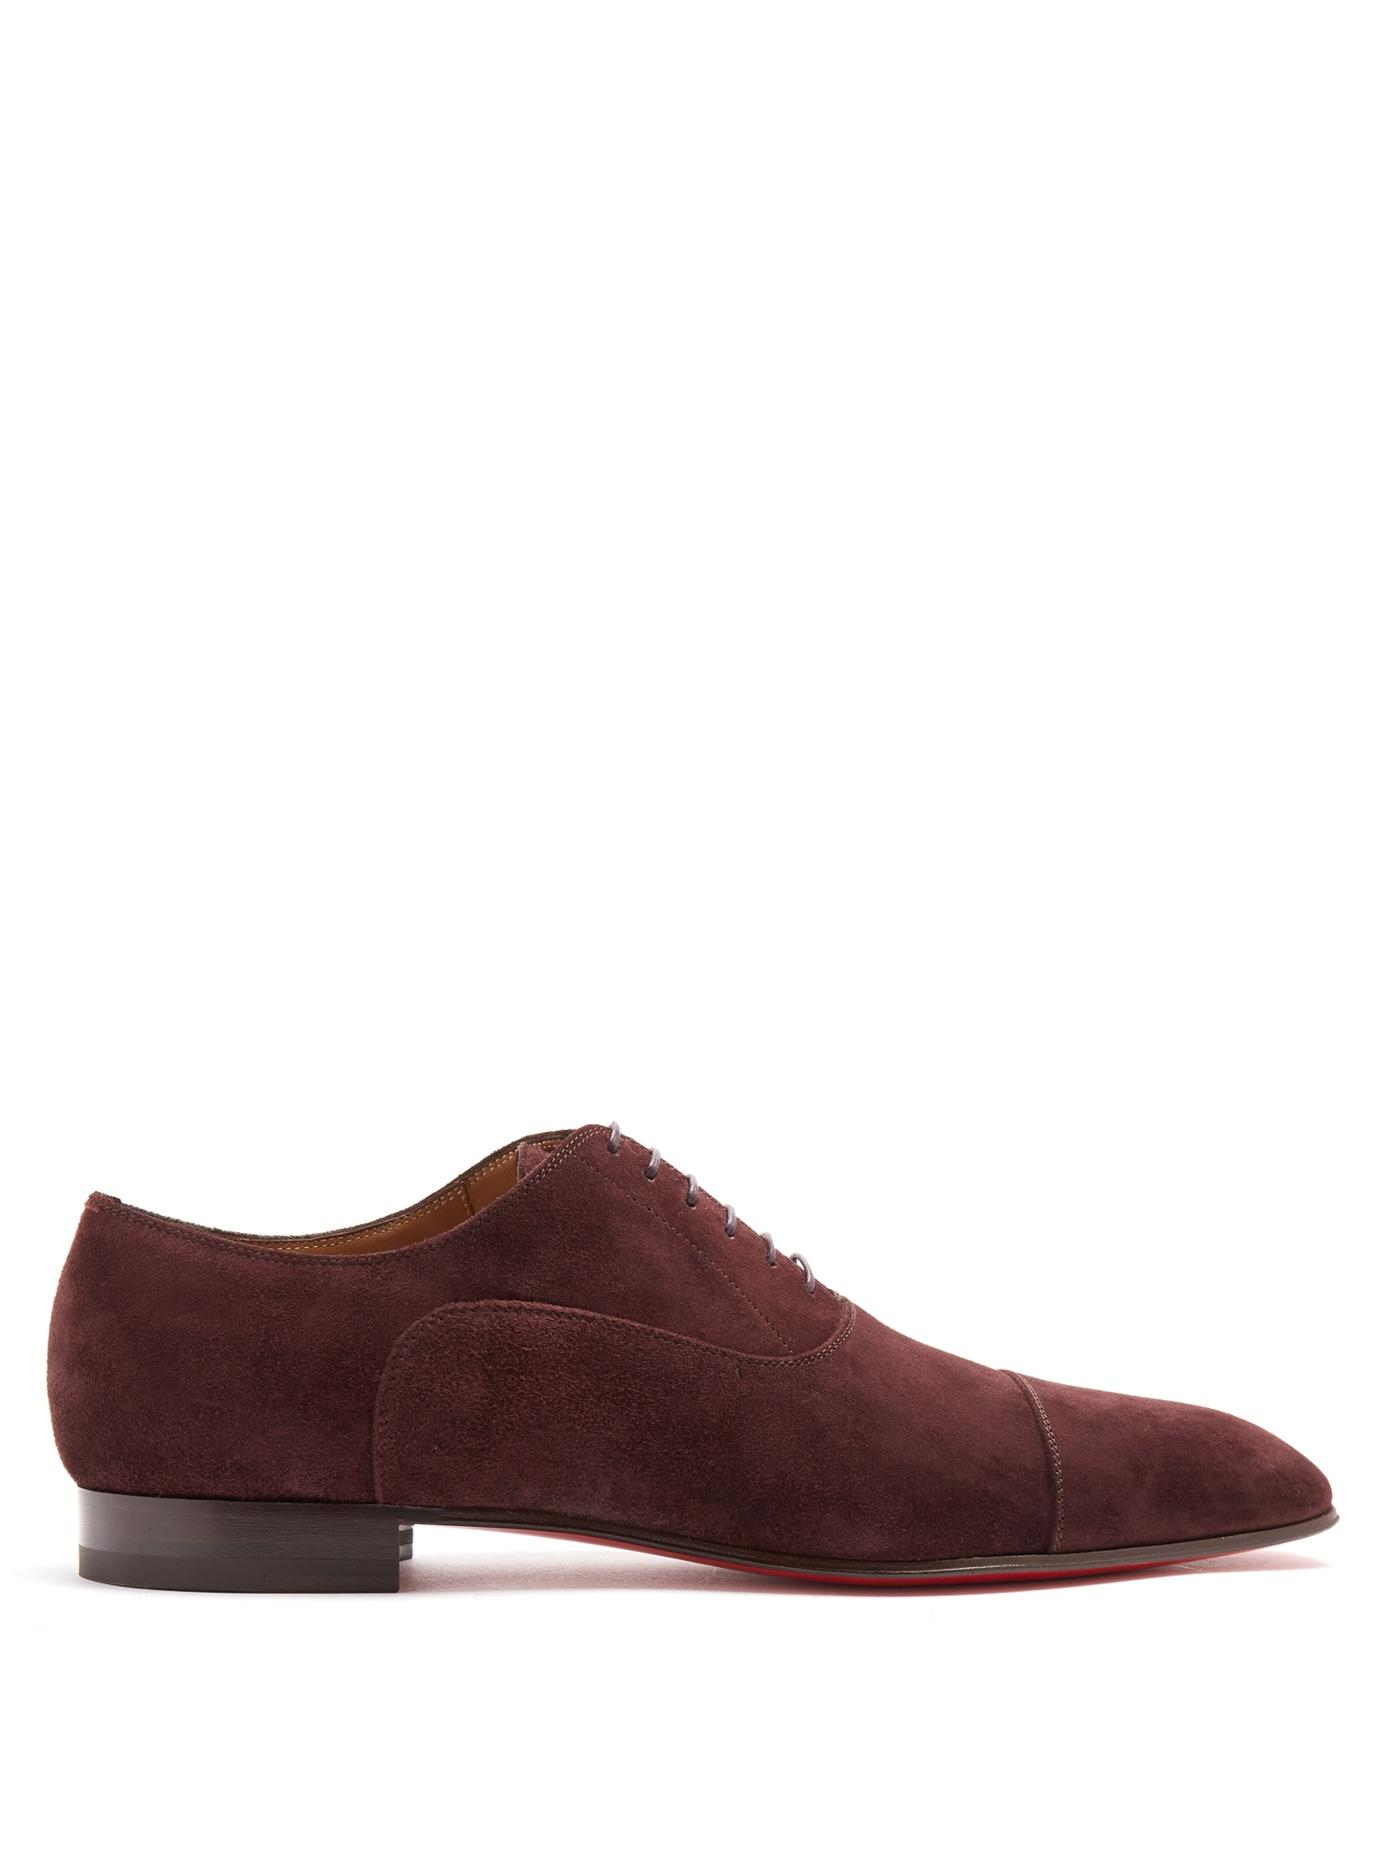 67c89d1a1d7 Christian Louboutin Greggo Suede Derby Shoes In Burgundy-Brown ...